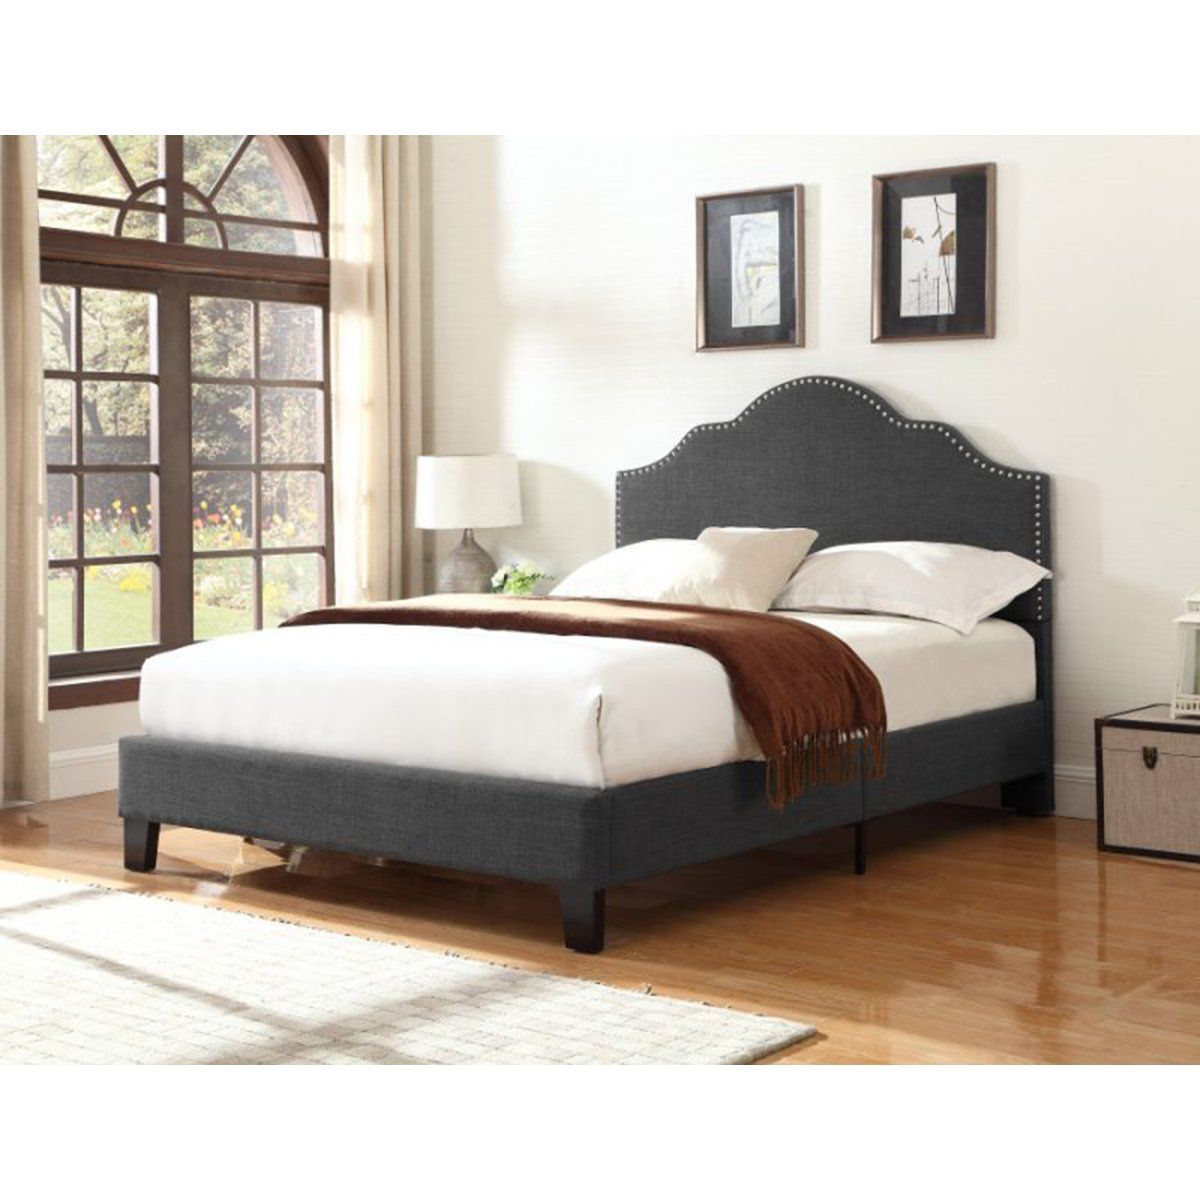 MADISON COMPLETE UPHOLSTERED BED Beds Emerald Home